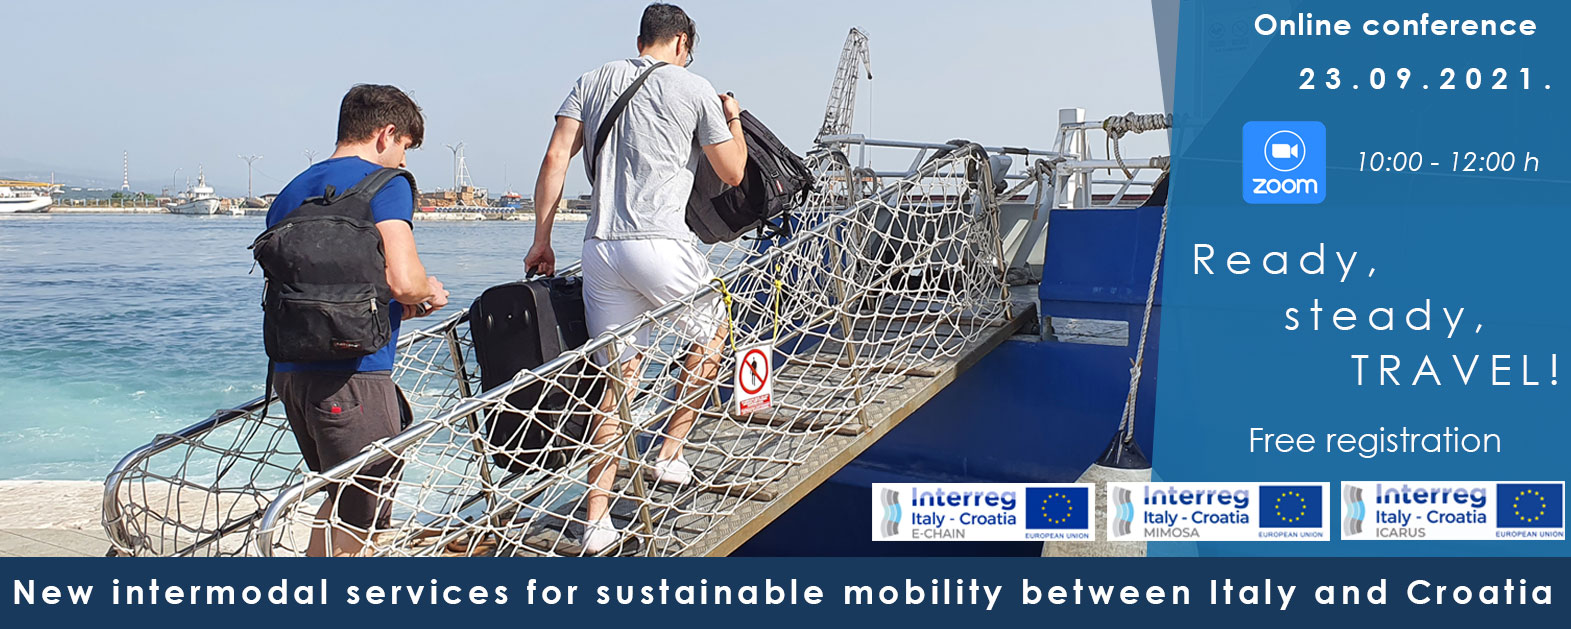 Online event: New Intermodal Services for Sustainable Mobility between Italy and Croatia